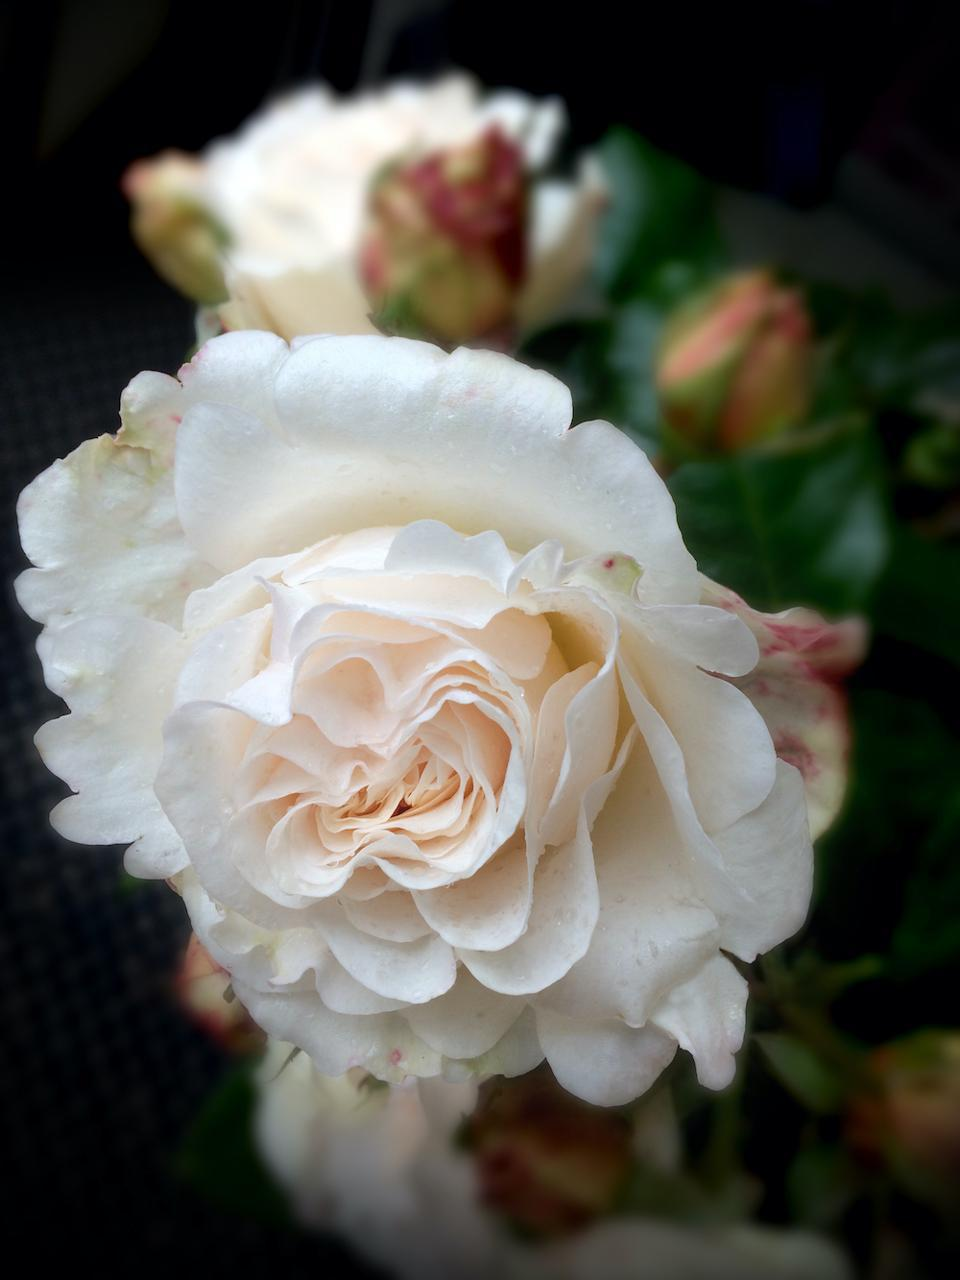 Phantom Rose is a creamy-white flower, offering a full bloom of 50 petals and rich perfume